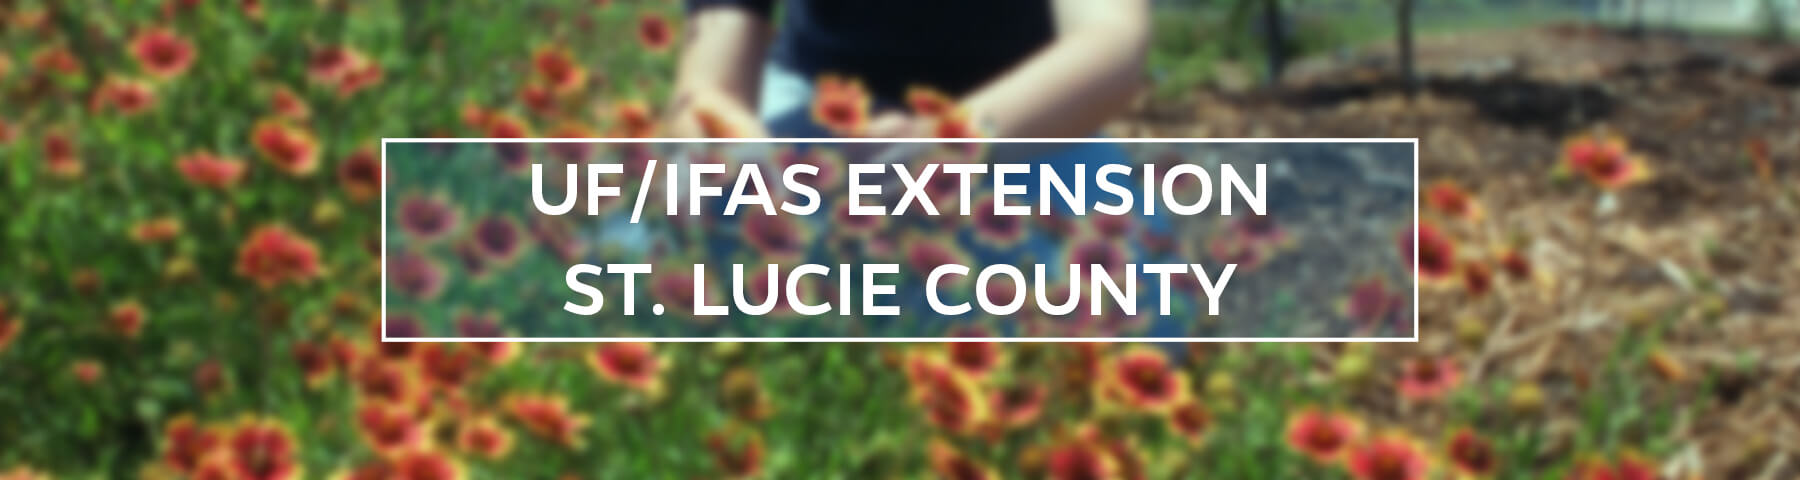 UF/IFAS Extension St. Lucie County